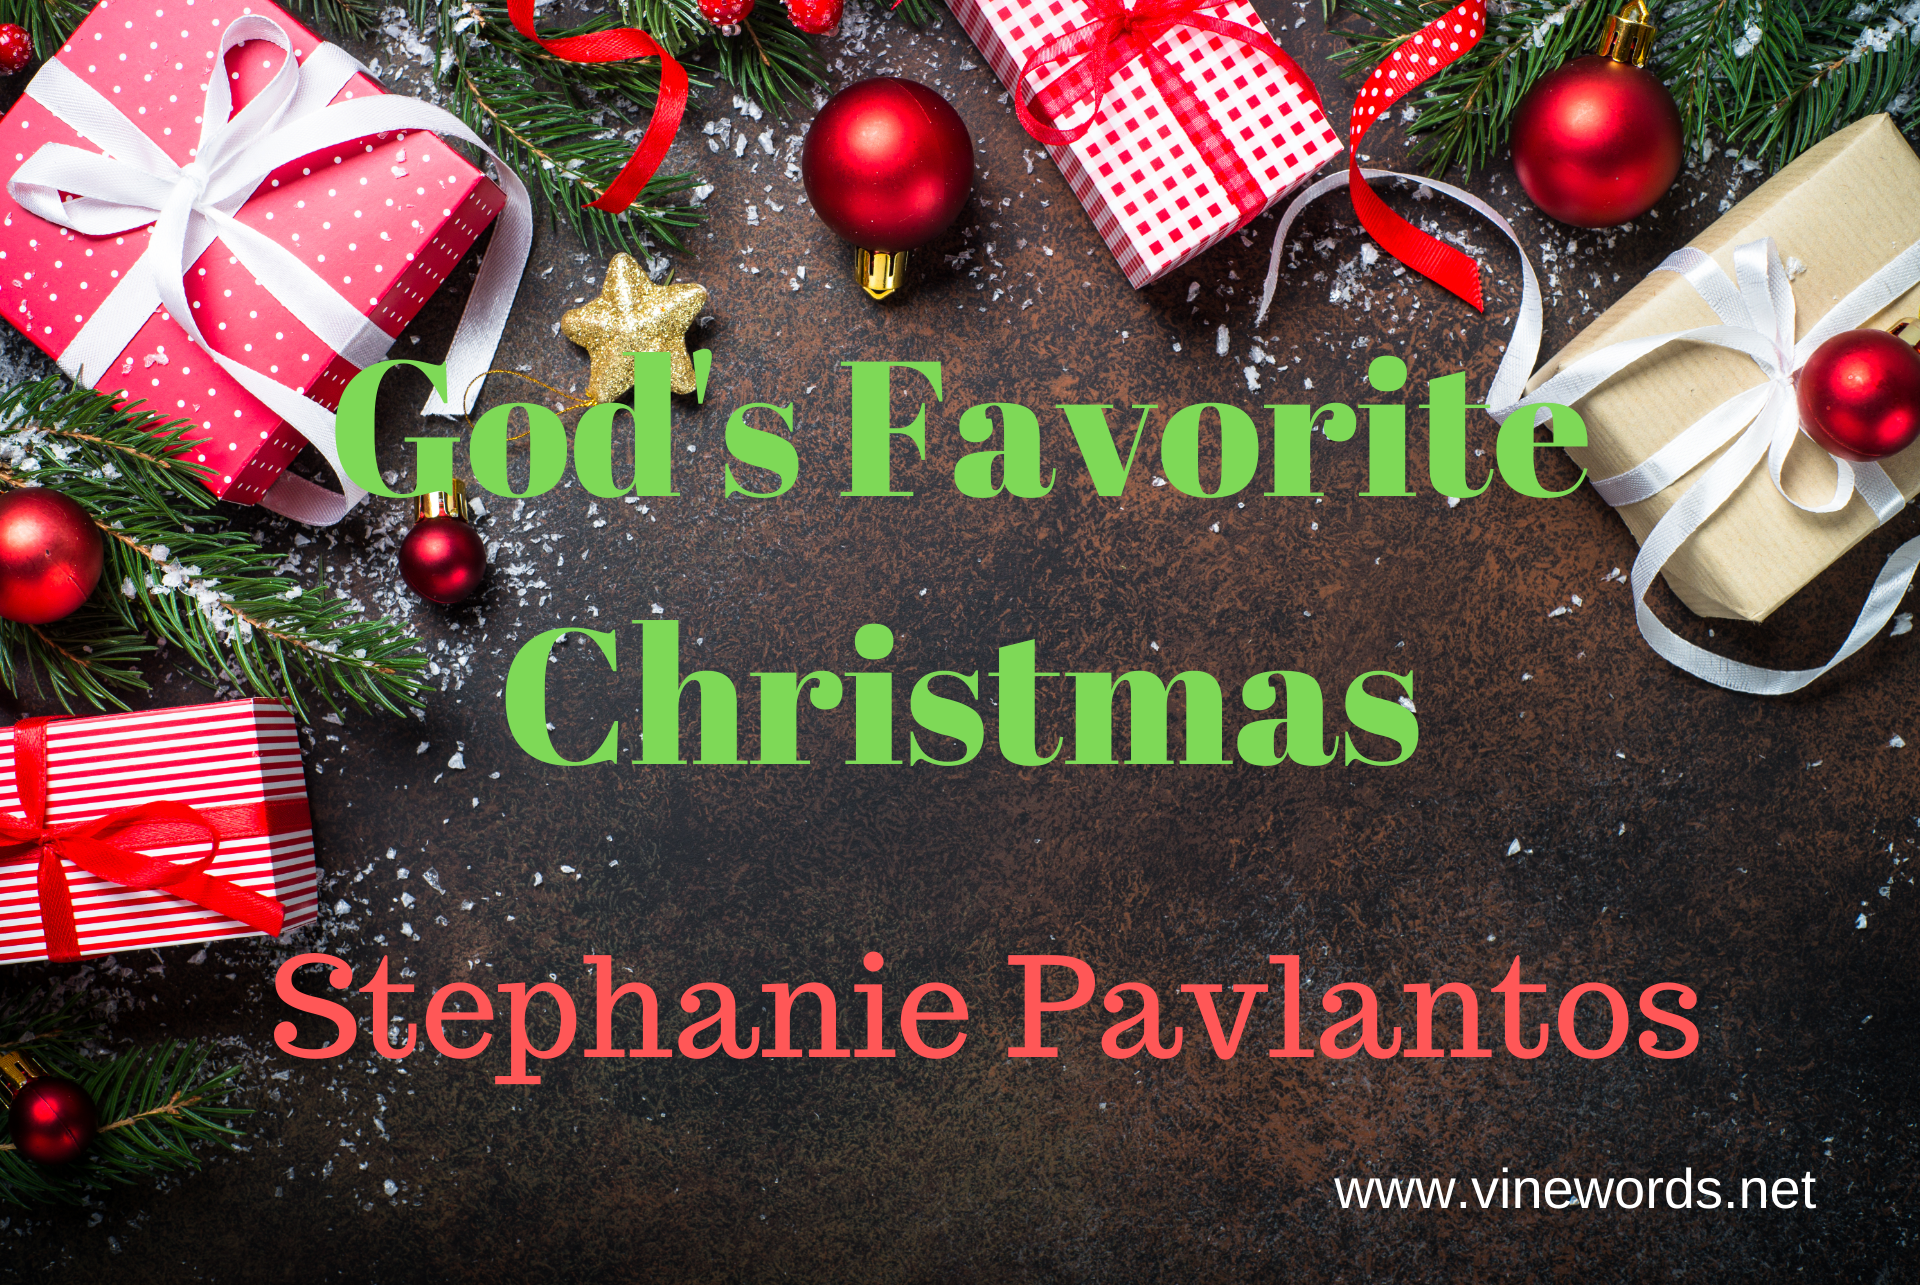 Stephanie Pavlantos: God's Favorite Christmas